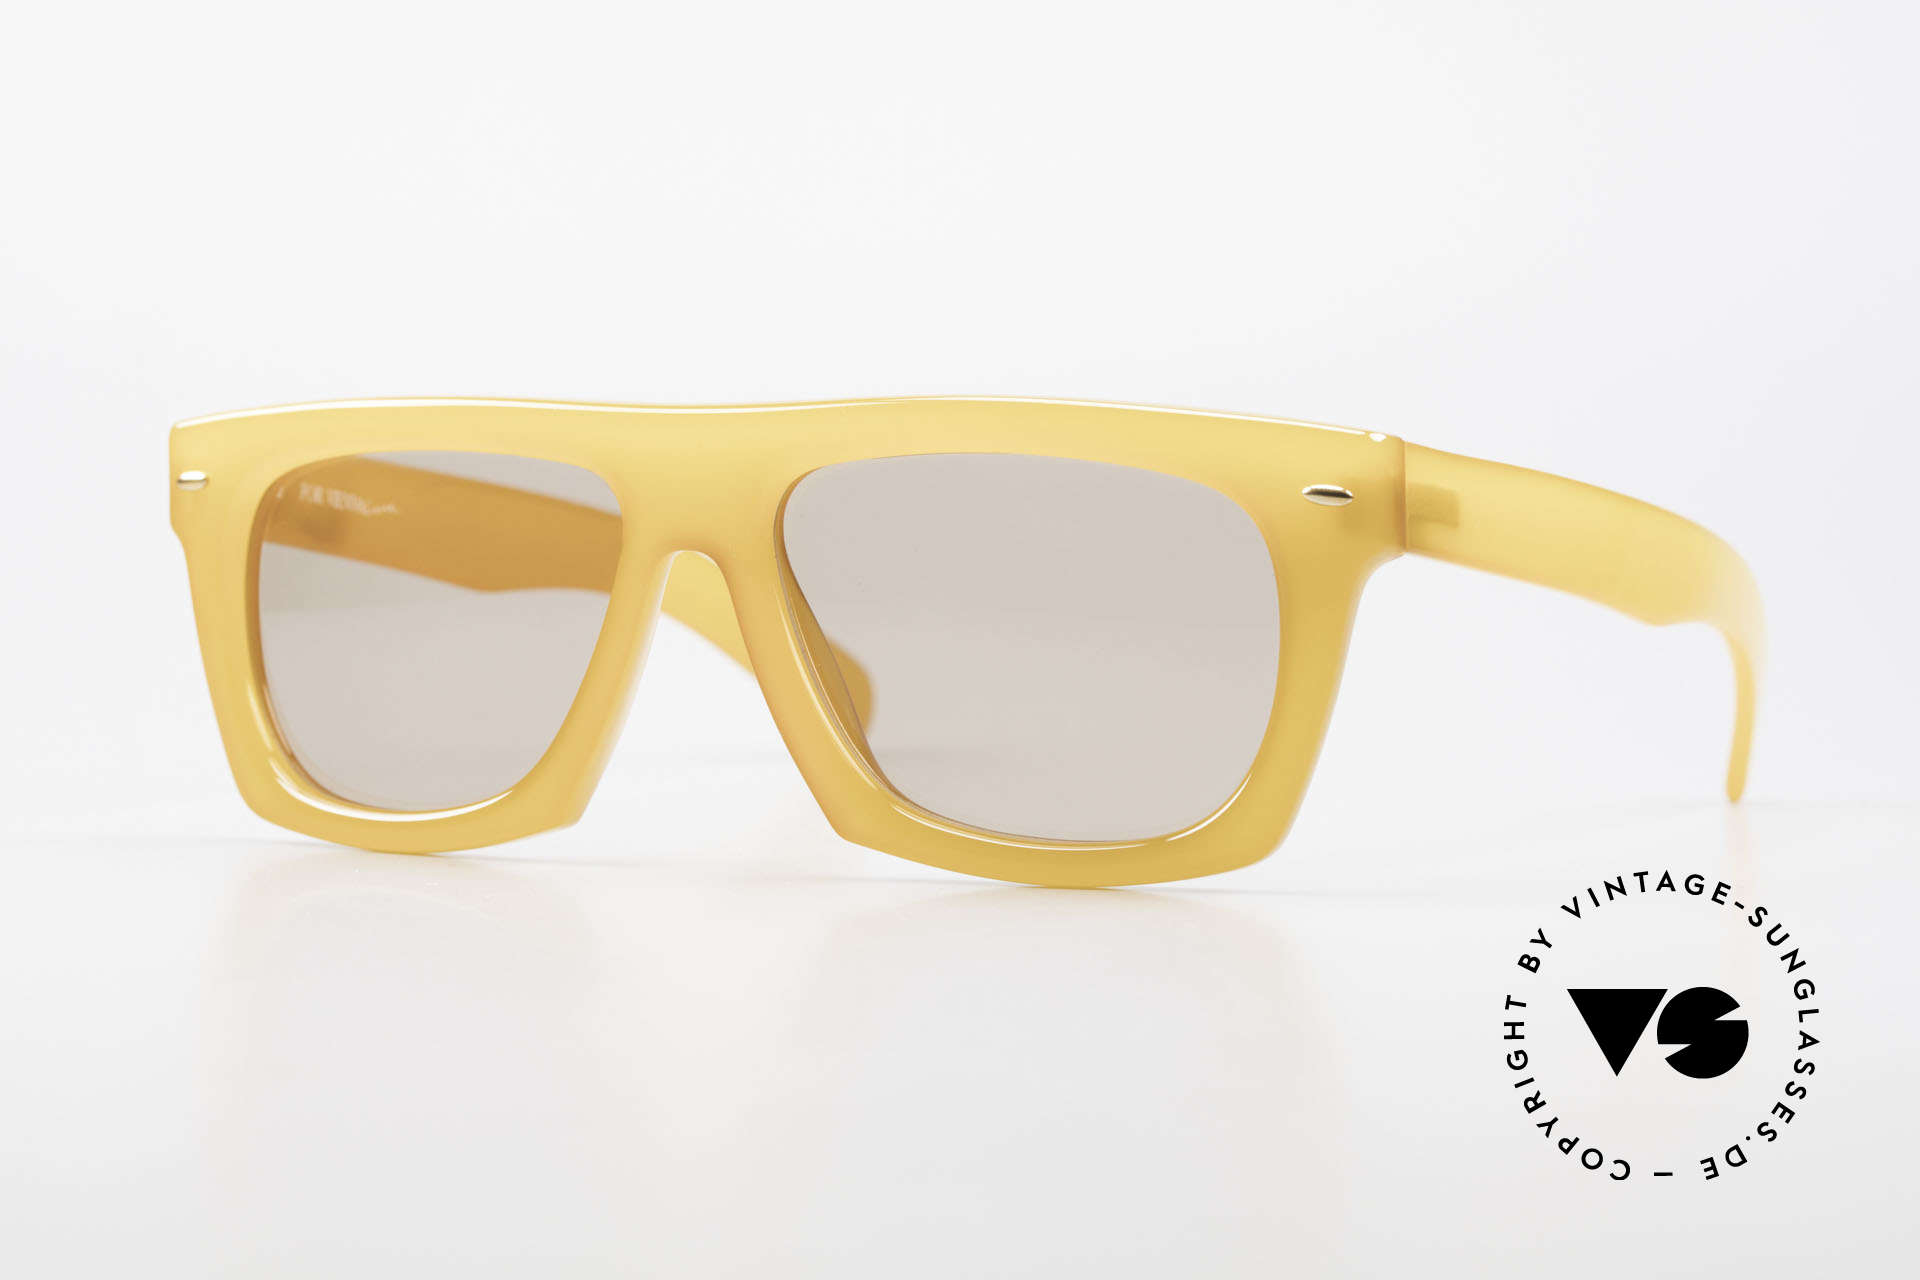 Paloma Picasso 1460 1990's Viennaline Collection, VINTAGE designer sunglasses by PALOMA Picasso, Made for Men and Women